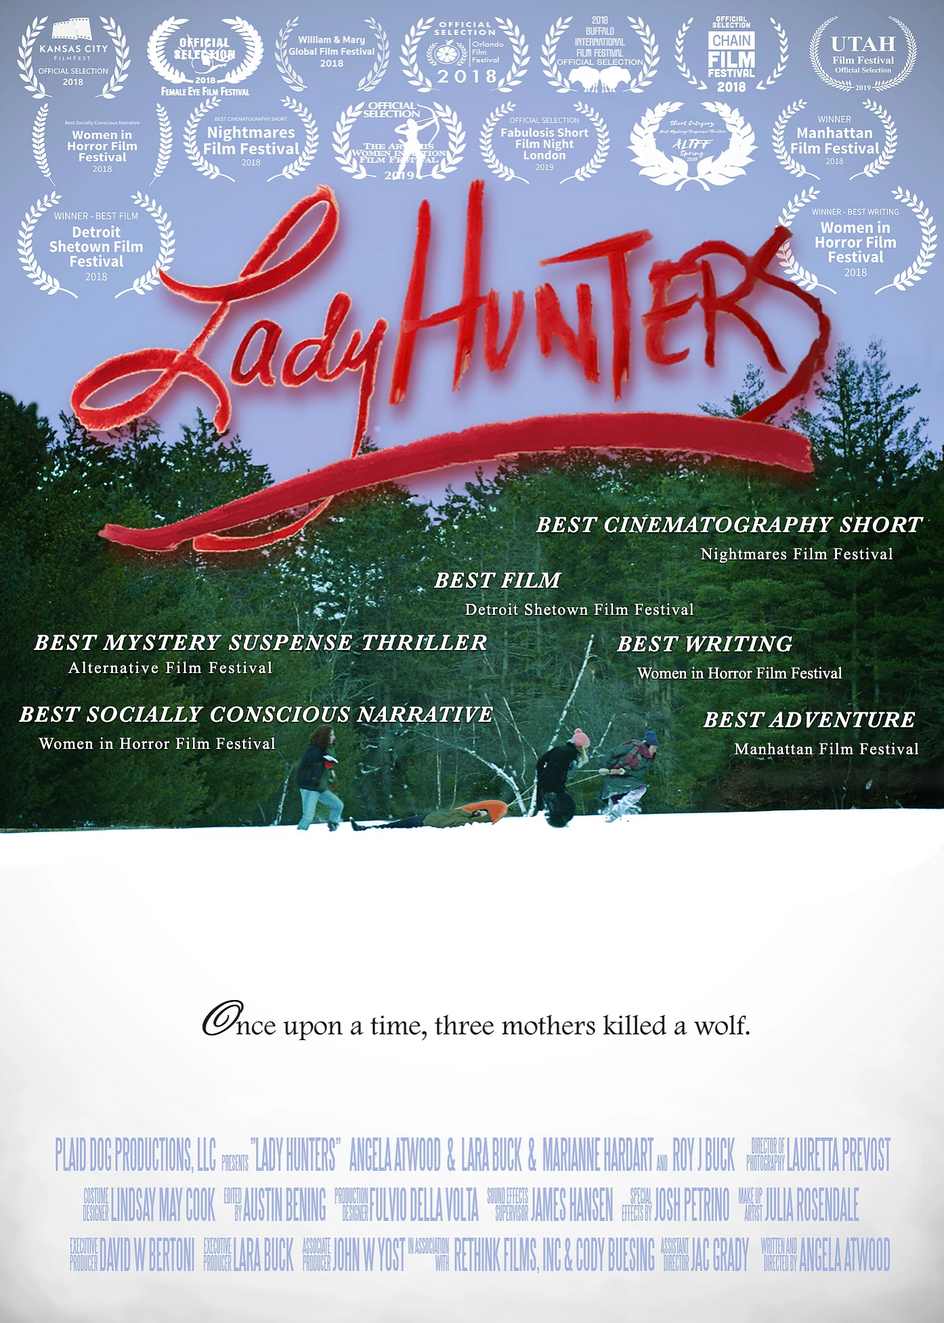 LADY HUNTERS - 6 AWARDS, and coming to the WEST COAST!